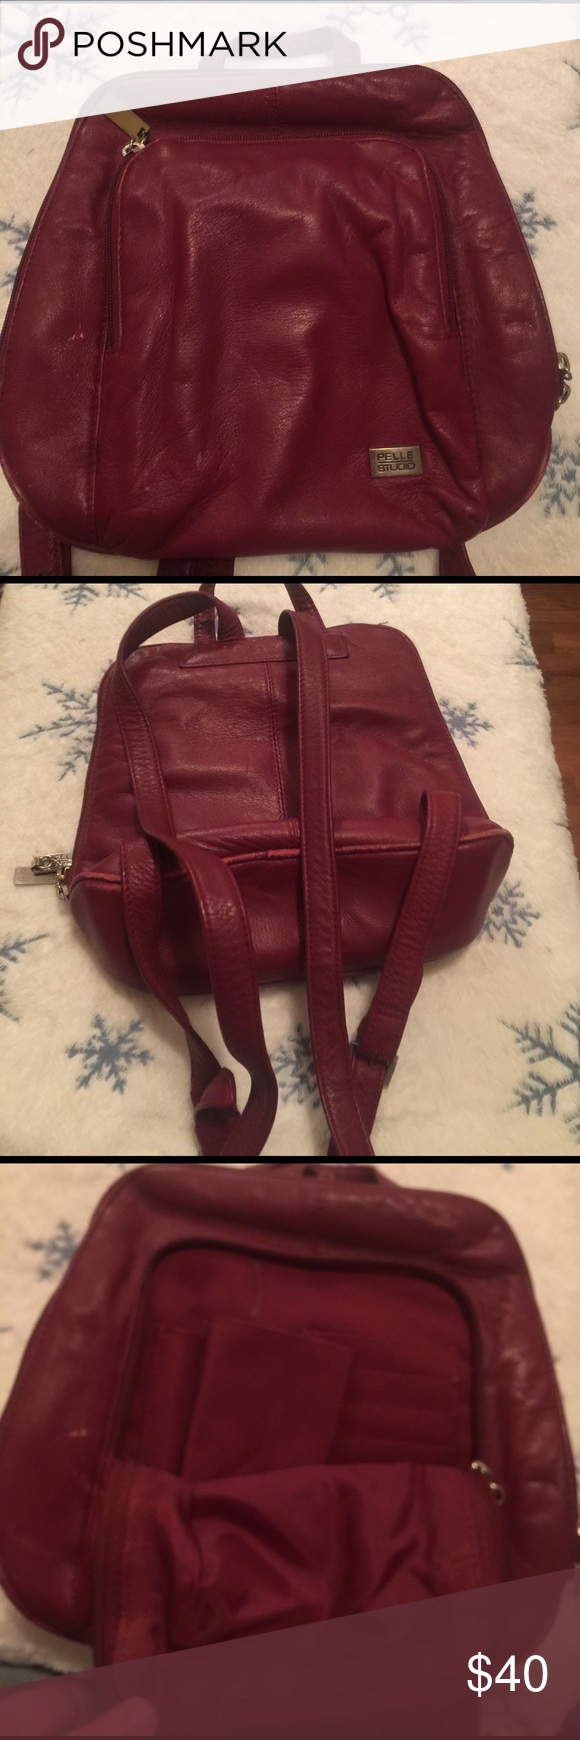 Wilsons leather pelle studio red purse Has some wear on